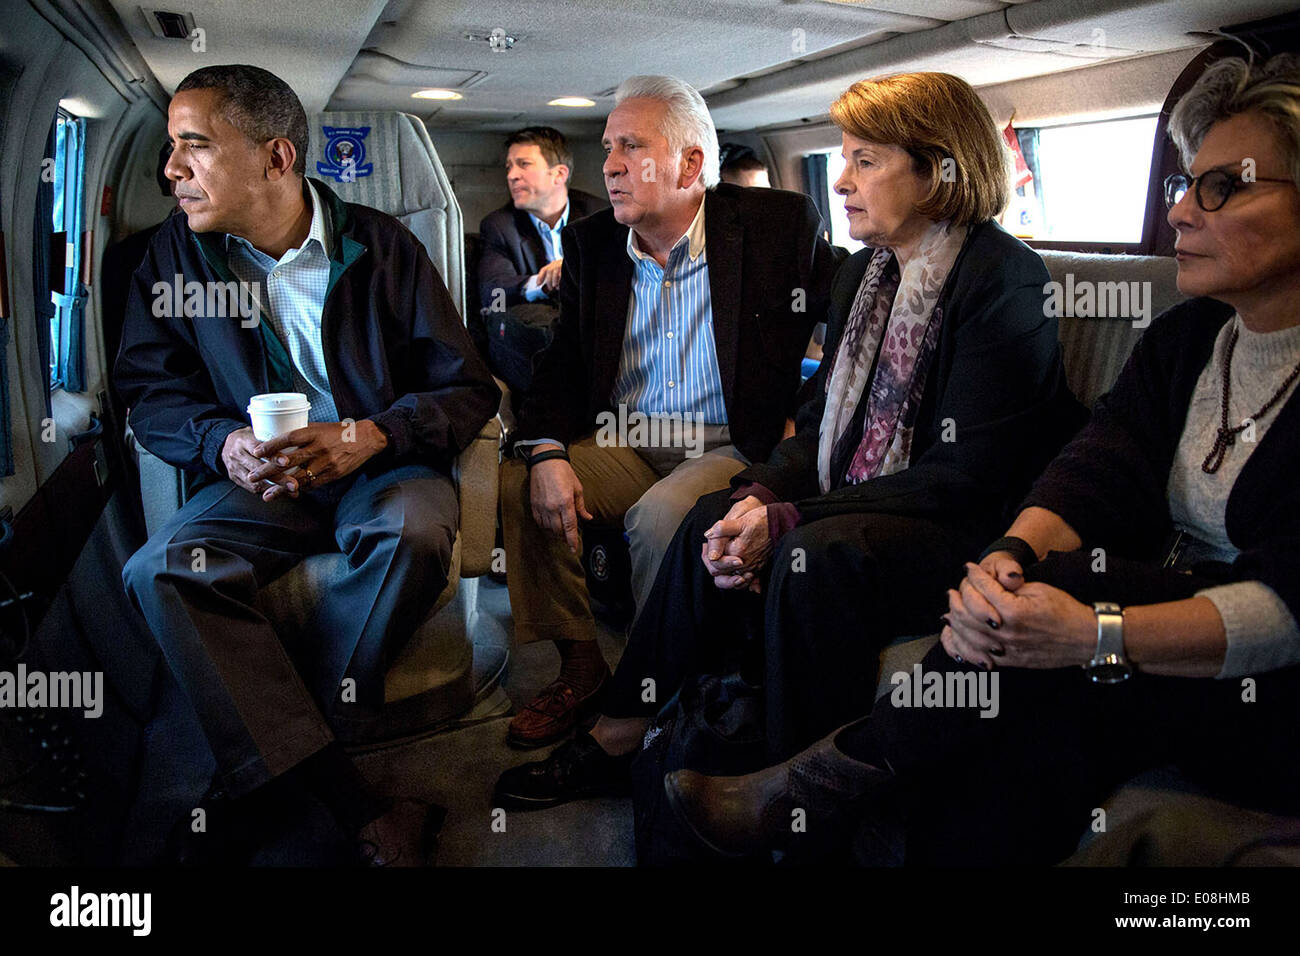 US President Barack Obama views drought conditions in California, aboard Marine One from Fresno to Firebaugh, accompanied by Rep. Jim Costa and Senators Dianne Feinstein and Barbara Boxer February 11, 2014. - Stock Image